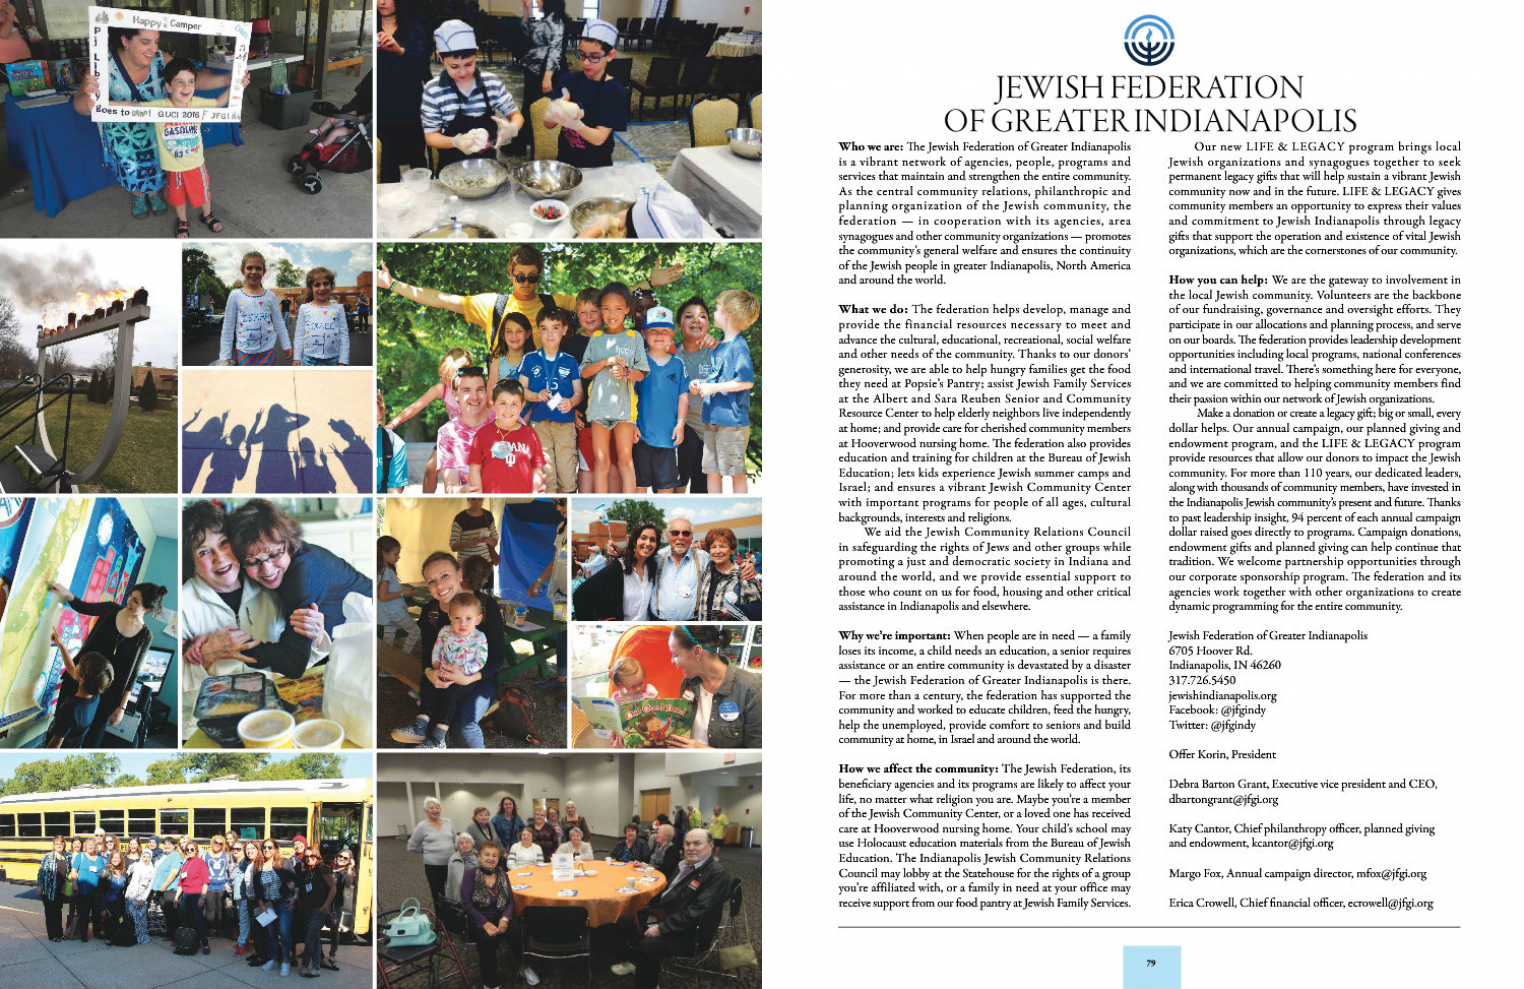 About Us | Jewish Federation of Greater Indianapolis, Inc